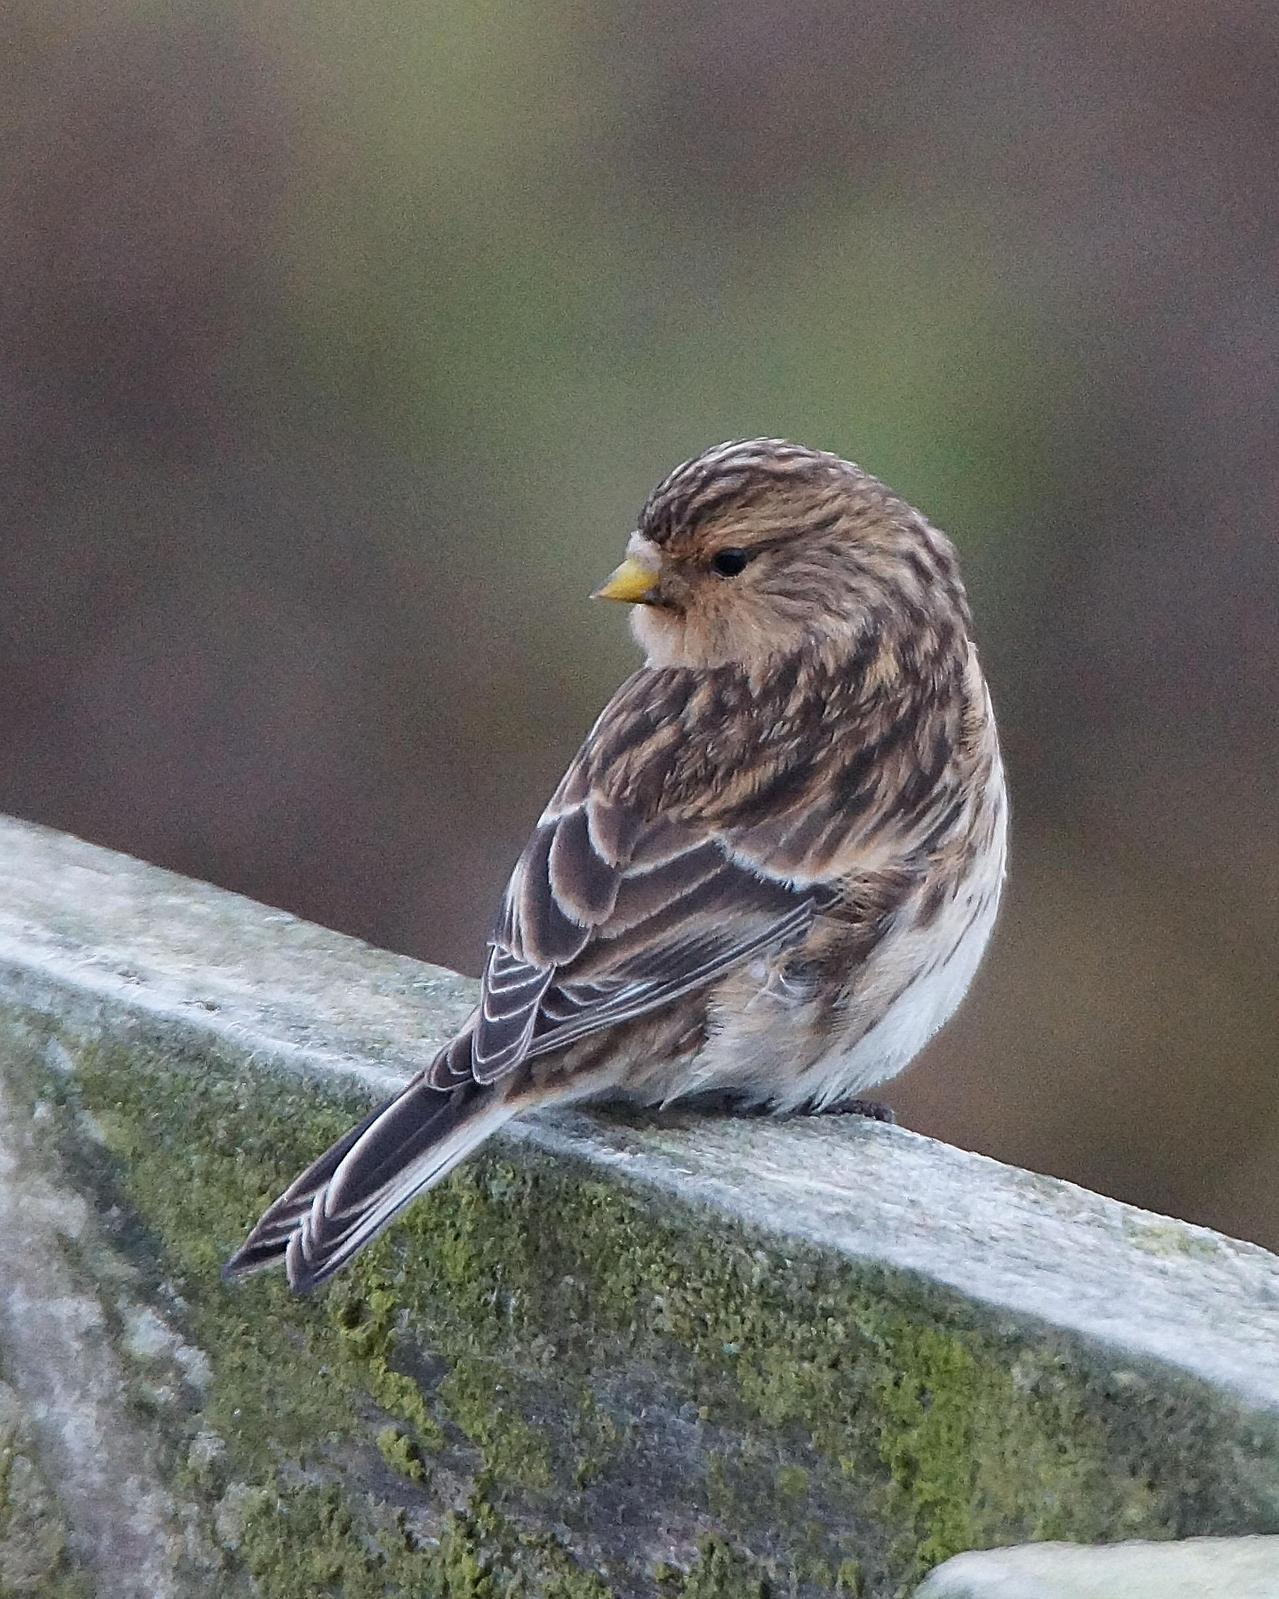 Twite Photo by Steve Percival